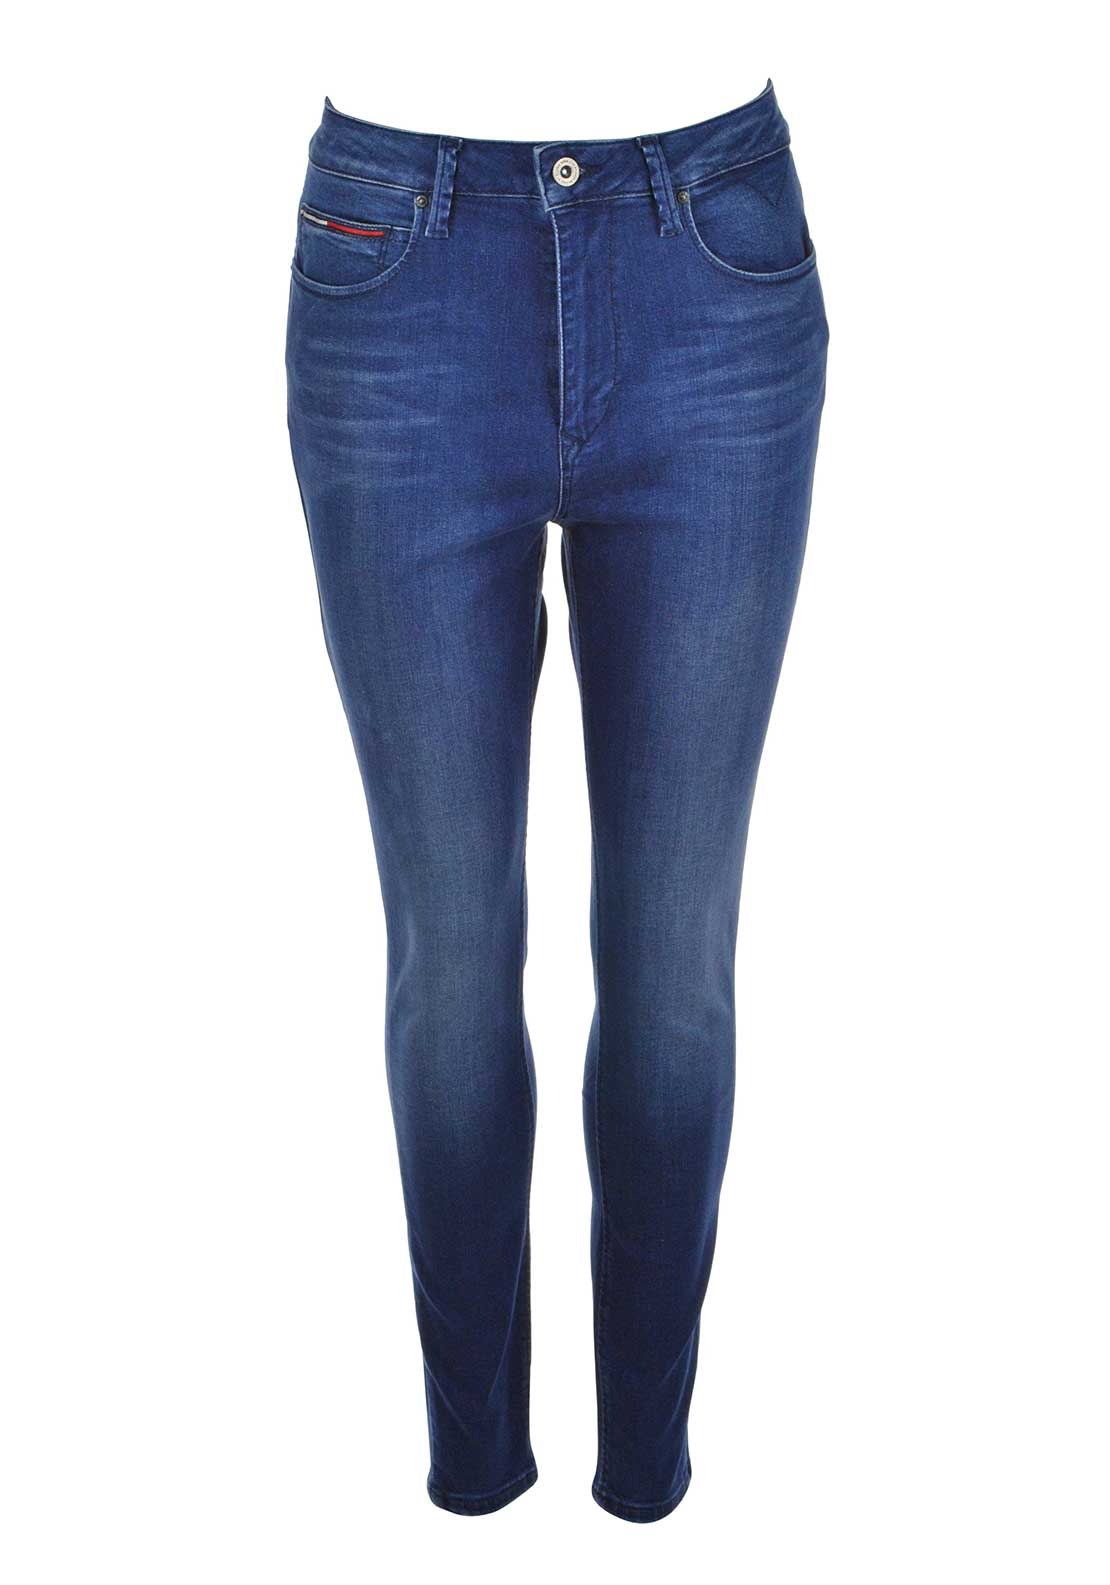 Tommy Hilfiger Womens Skye Ultra High Rise Skinny Jeans, Blue